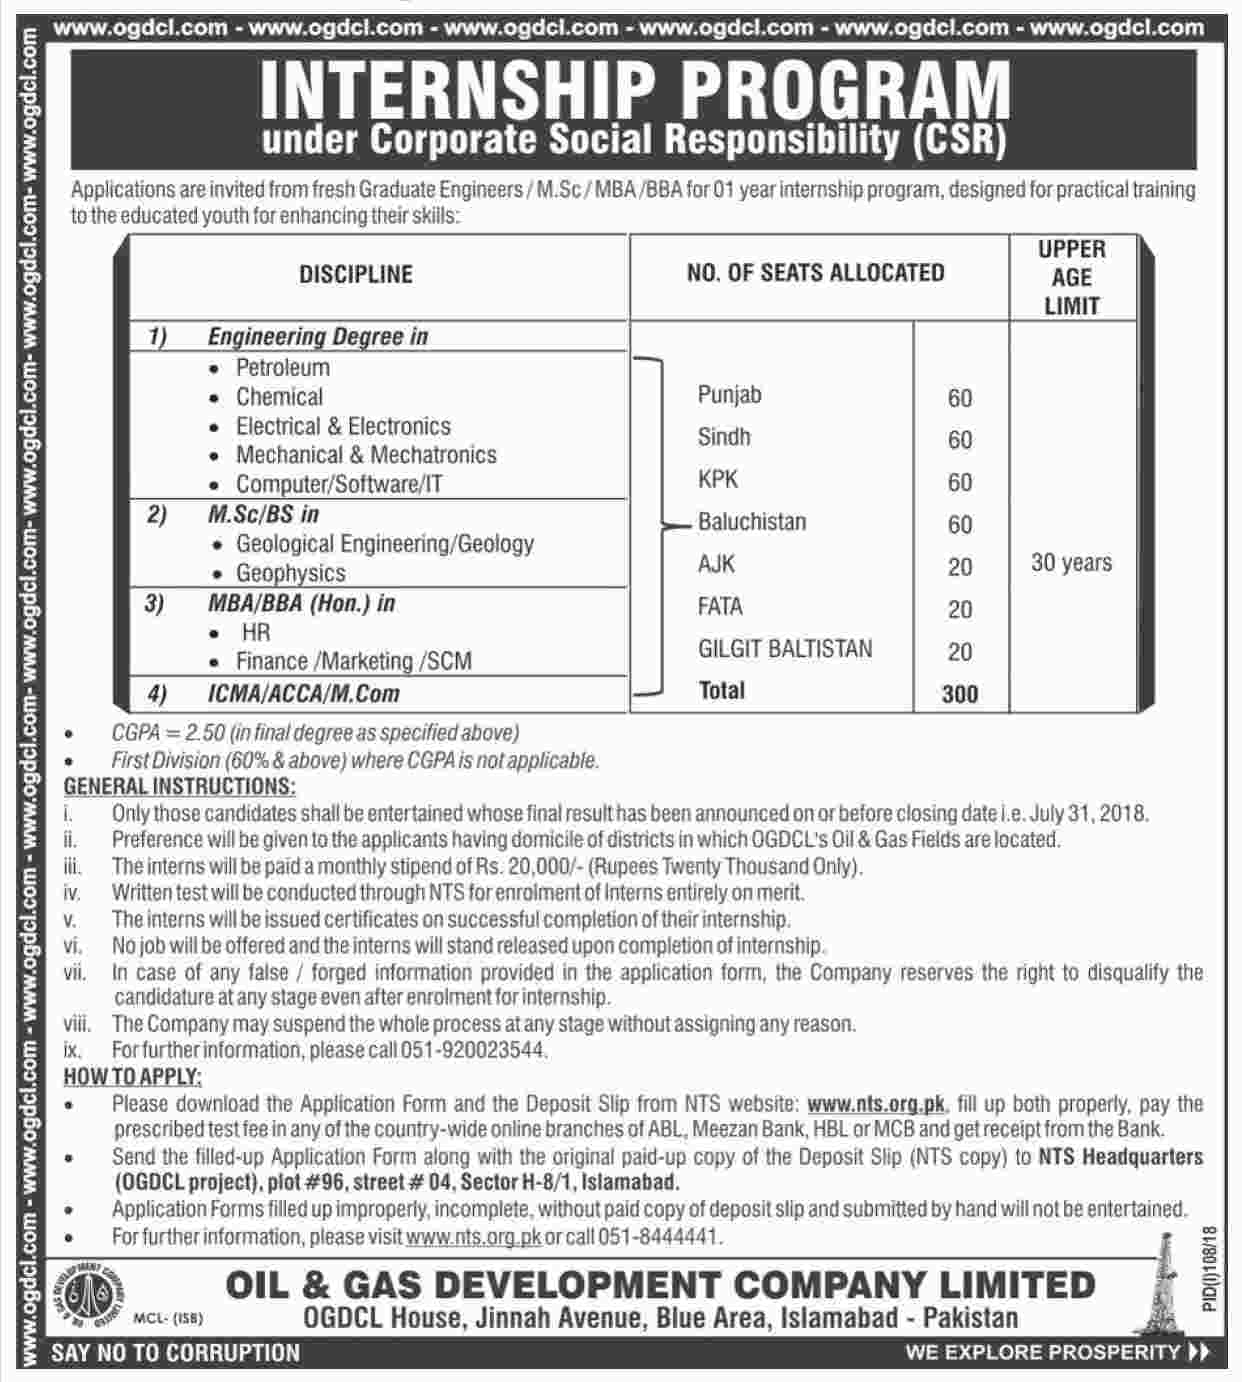 Oil & Gas Development Company Limited OGDCL Internship Program NTS Application Forms